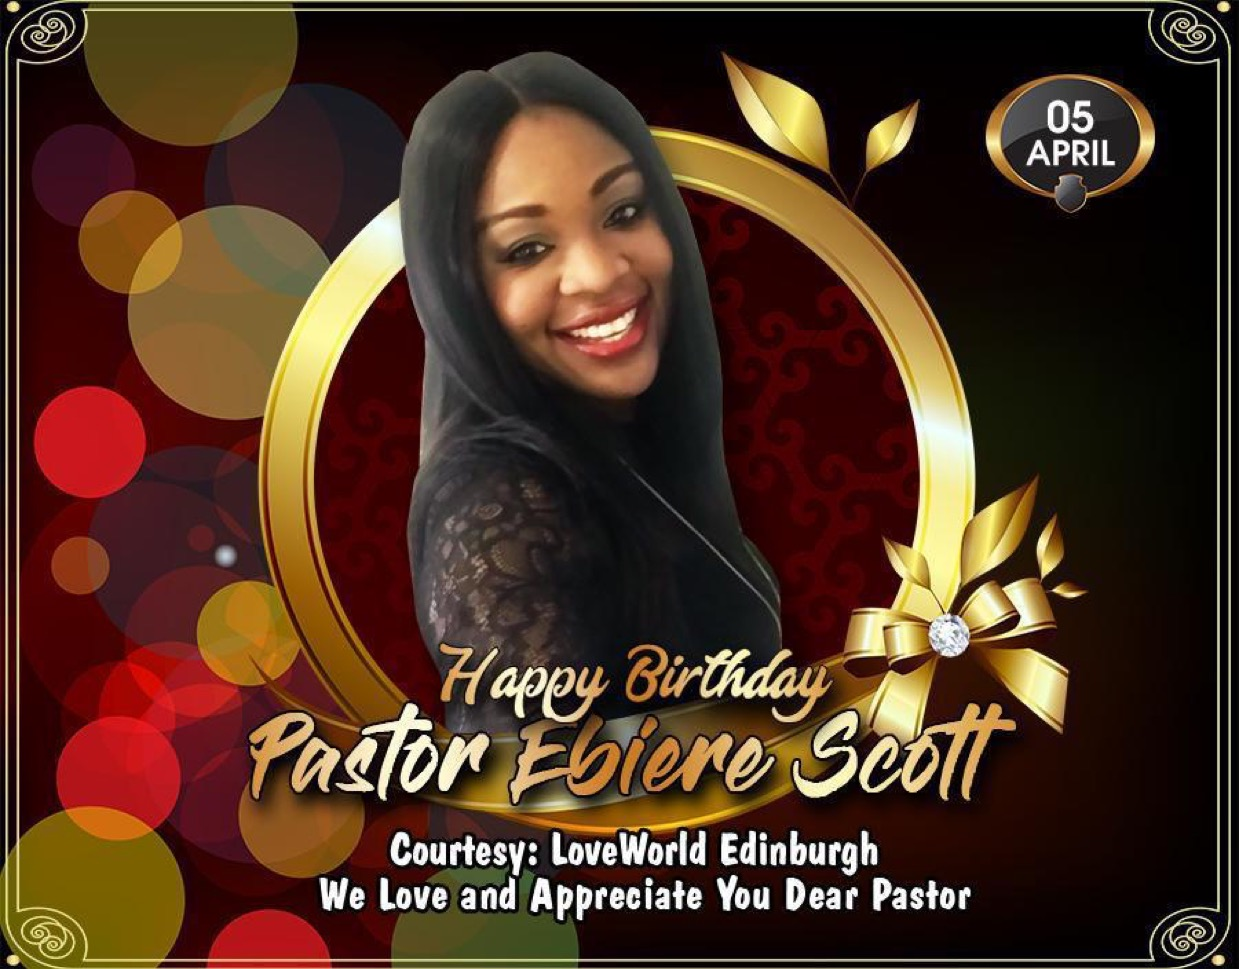 Happy BD Pastor, we join